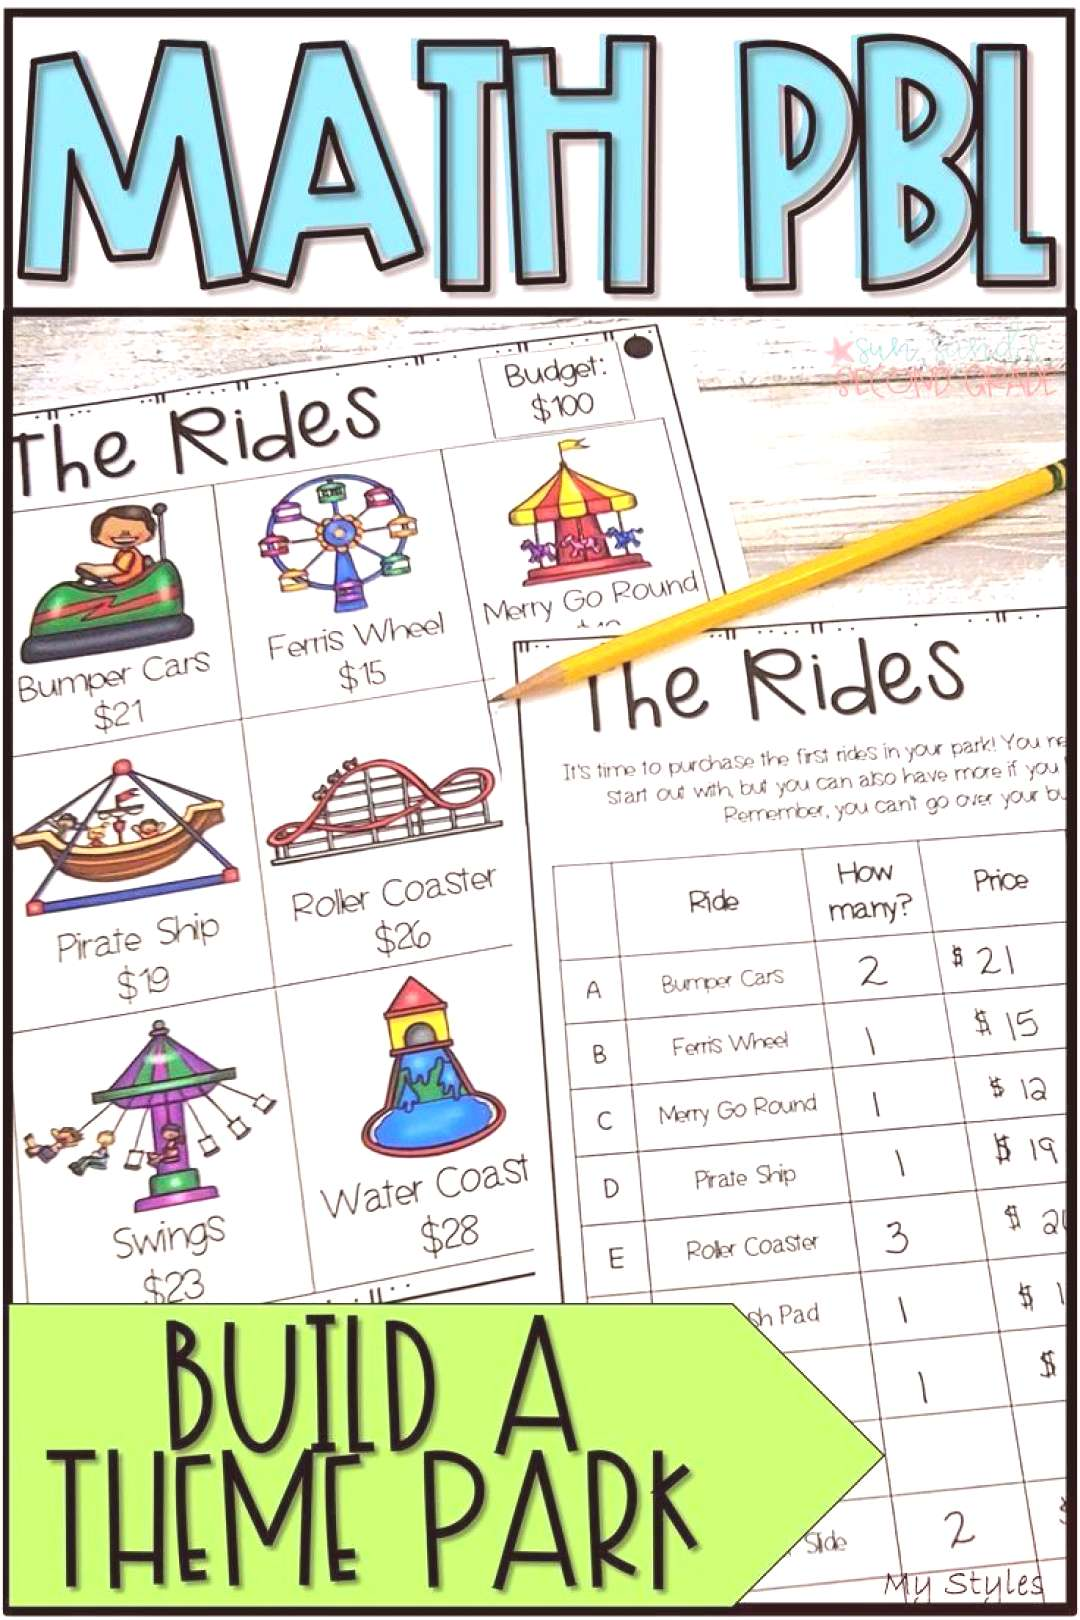 PBL Math Enrichment Project | Build a Theme Park Project Based Learning